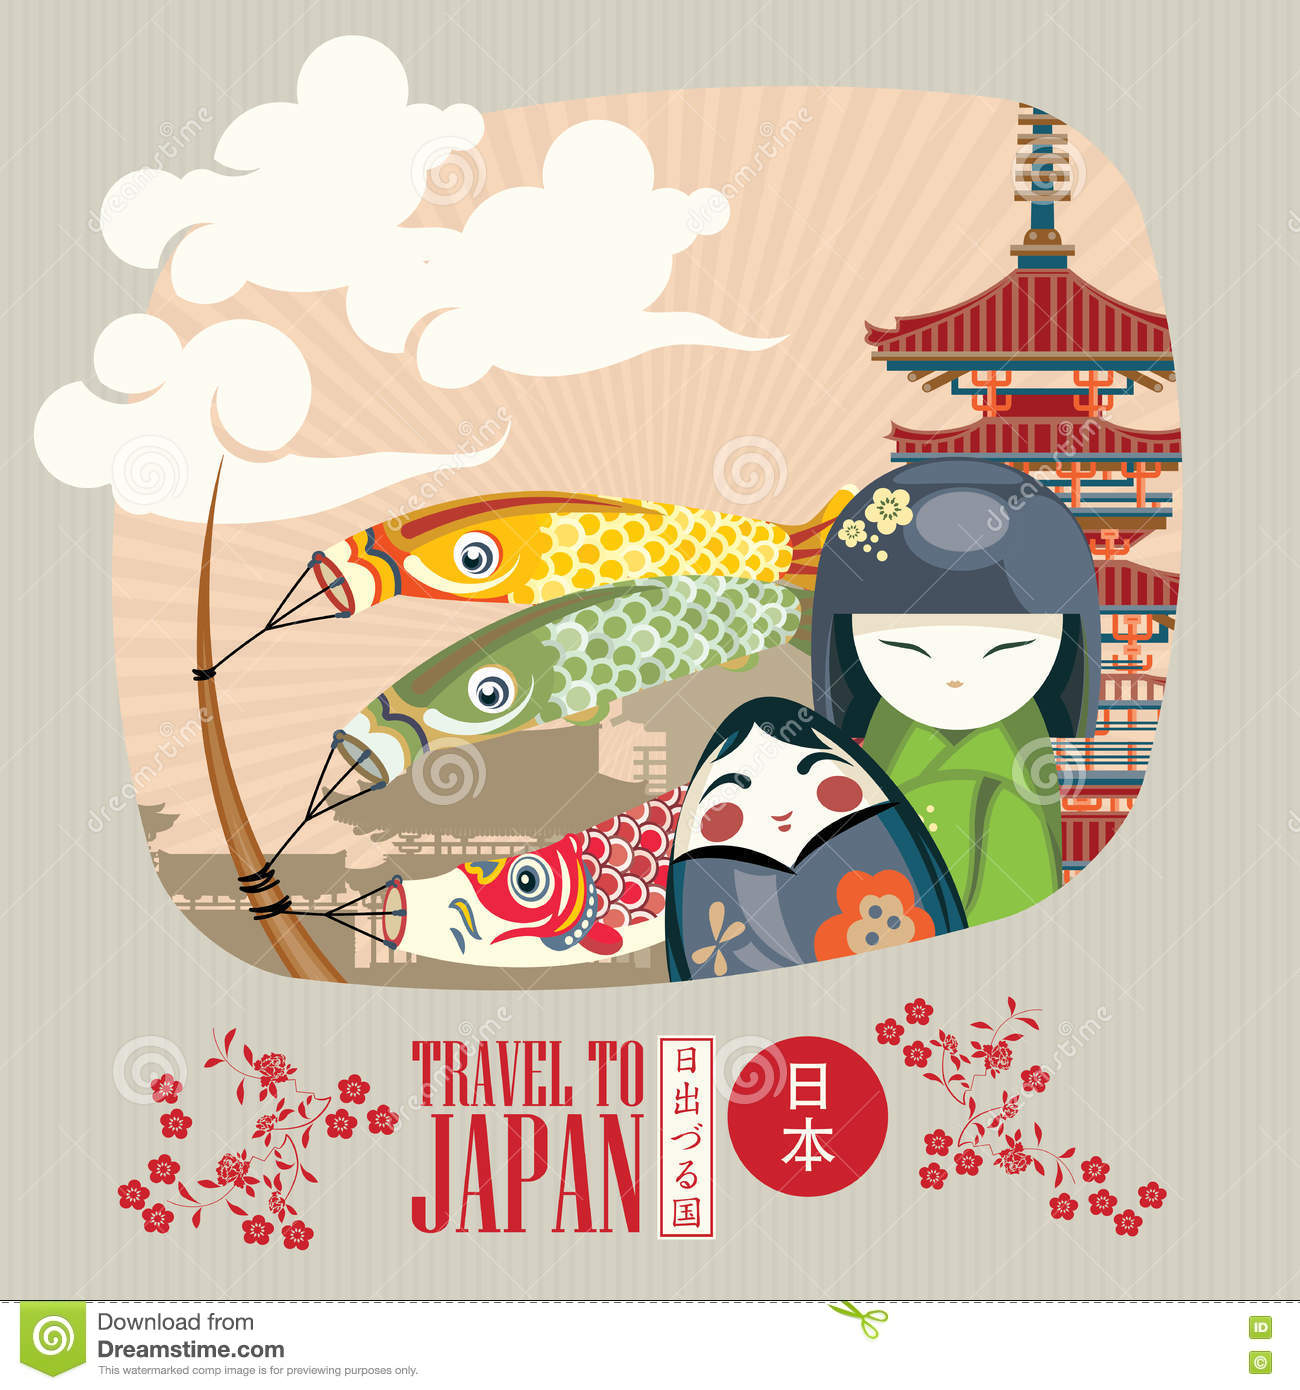 Japan travel poster with asian traditional symbols - travel to Japan.